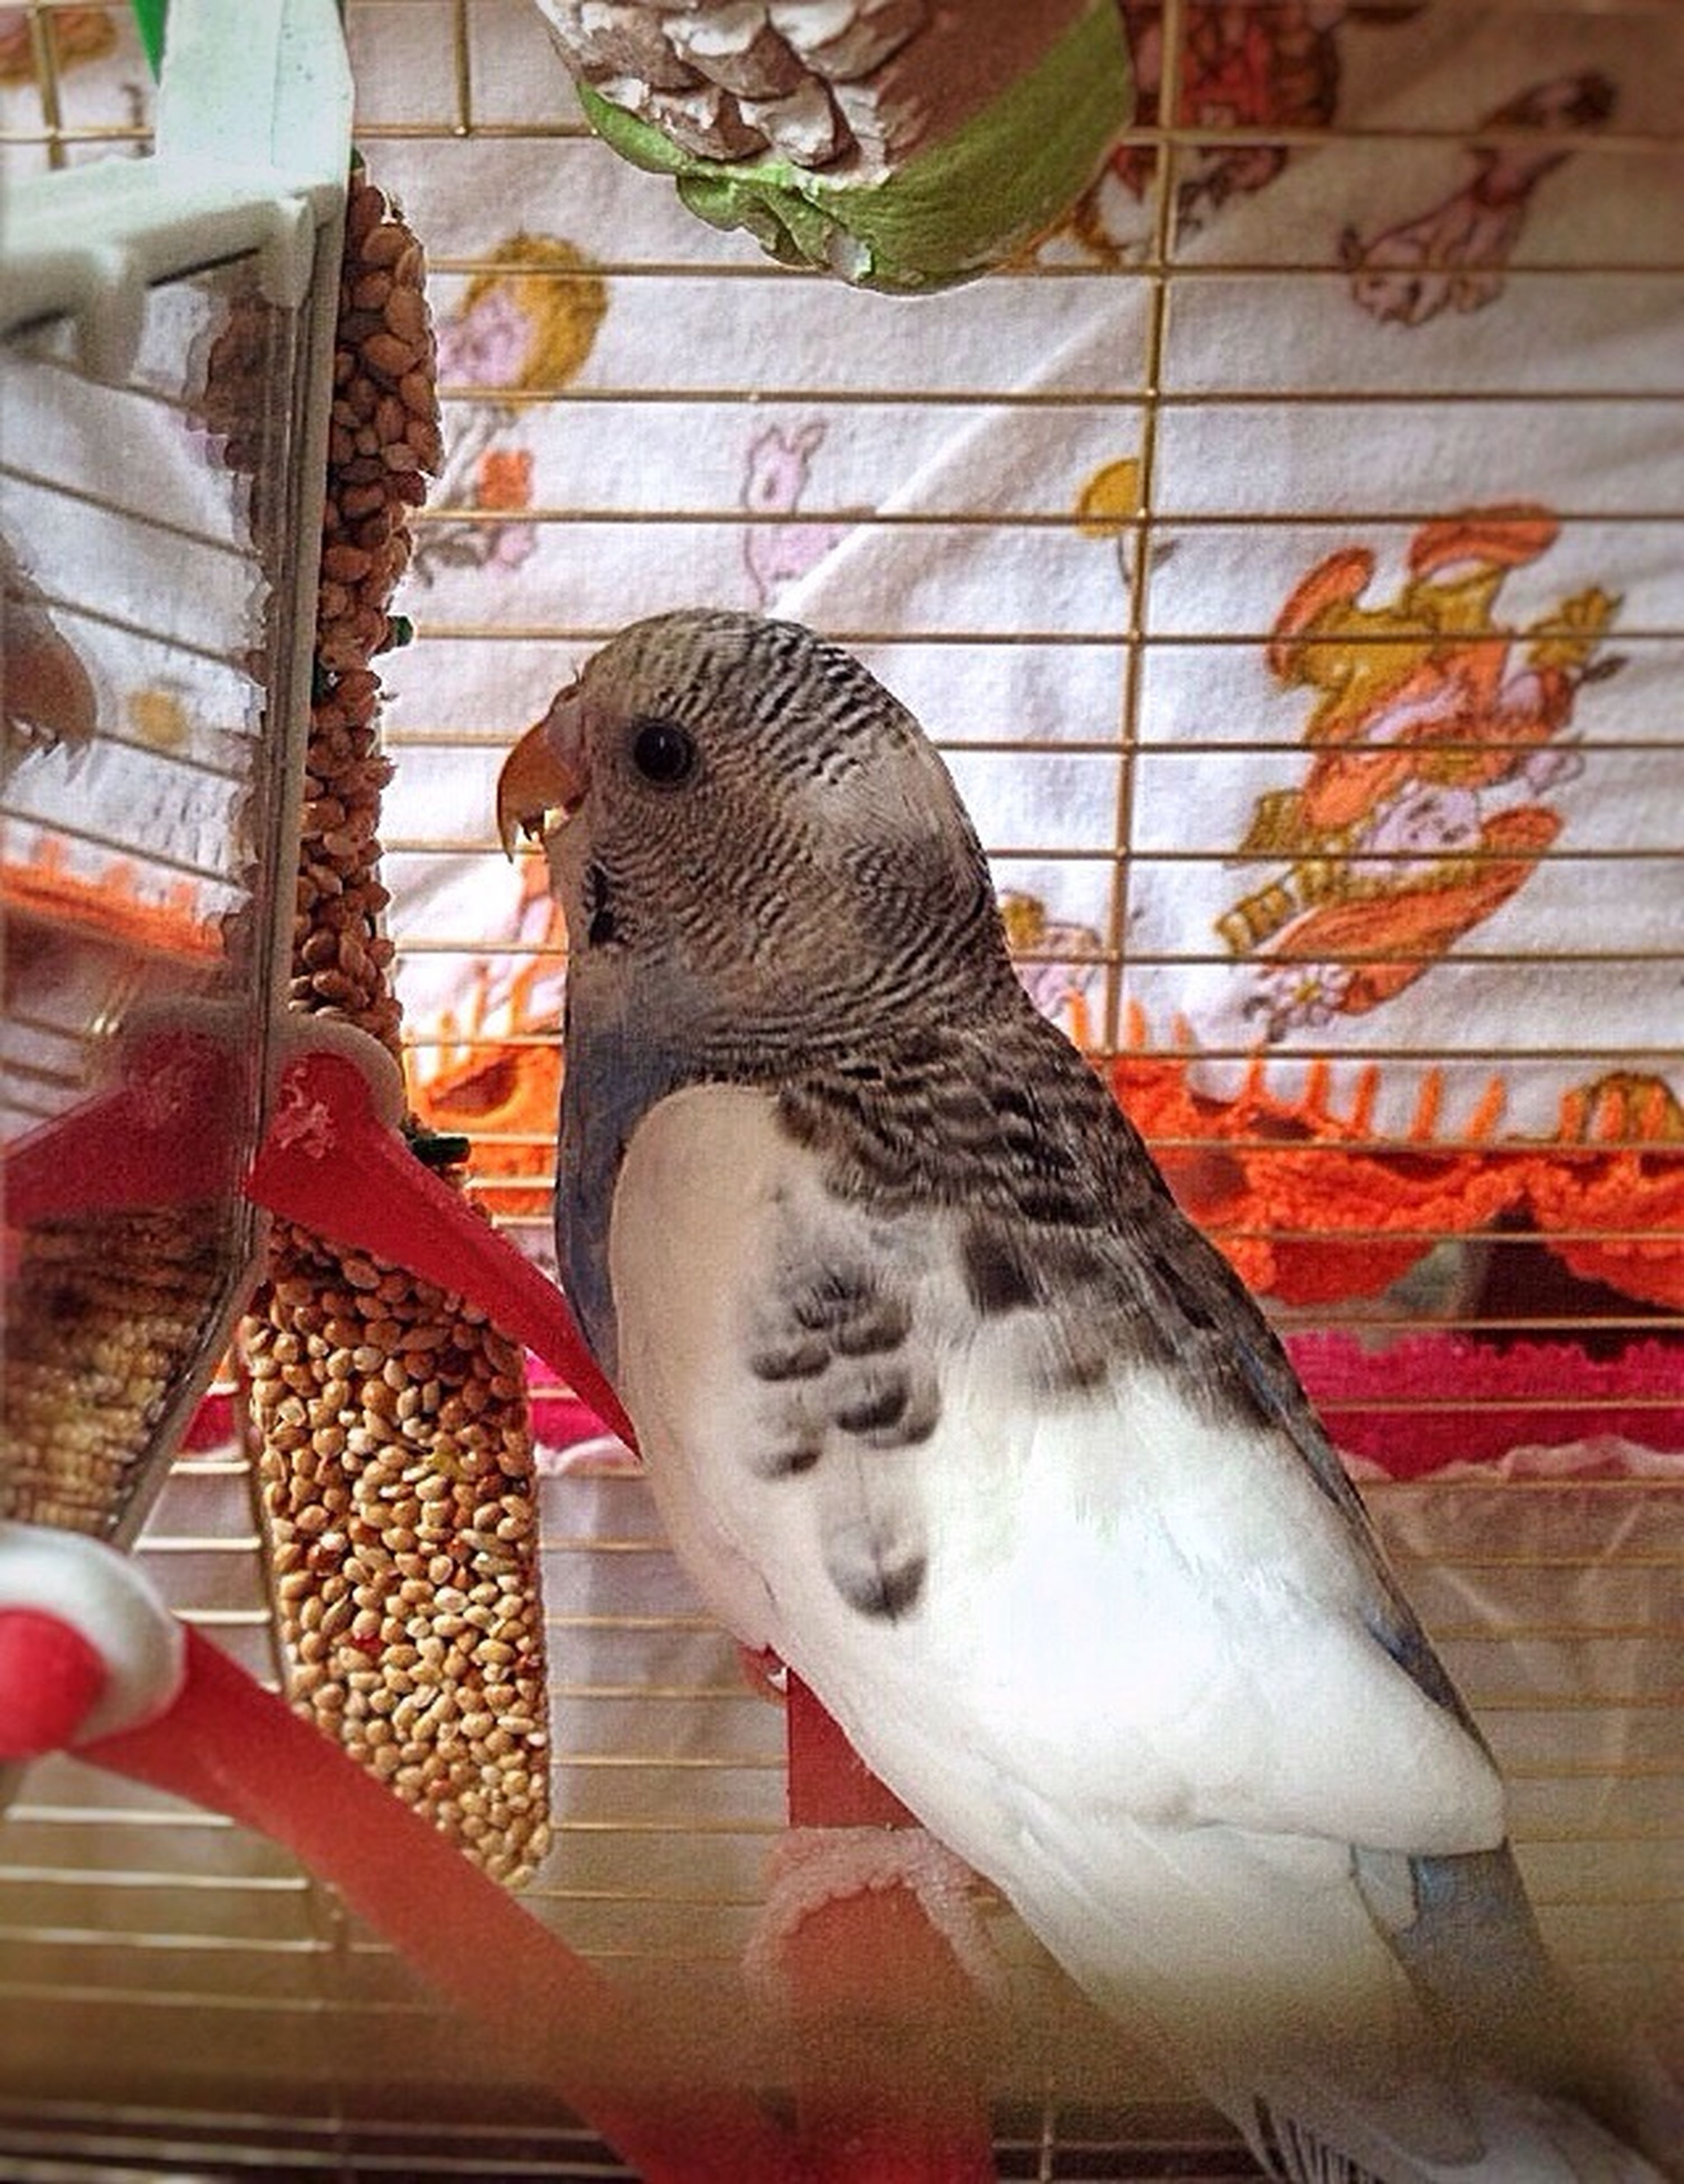 bird, cage, animal themes, animals in captivity, one animal, birdcage, animal wildlife, no people, indoors, pets, hen, day, mammal, close-up, perching